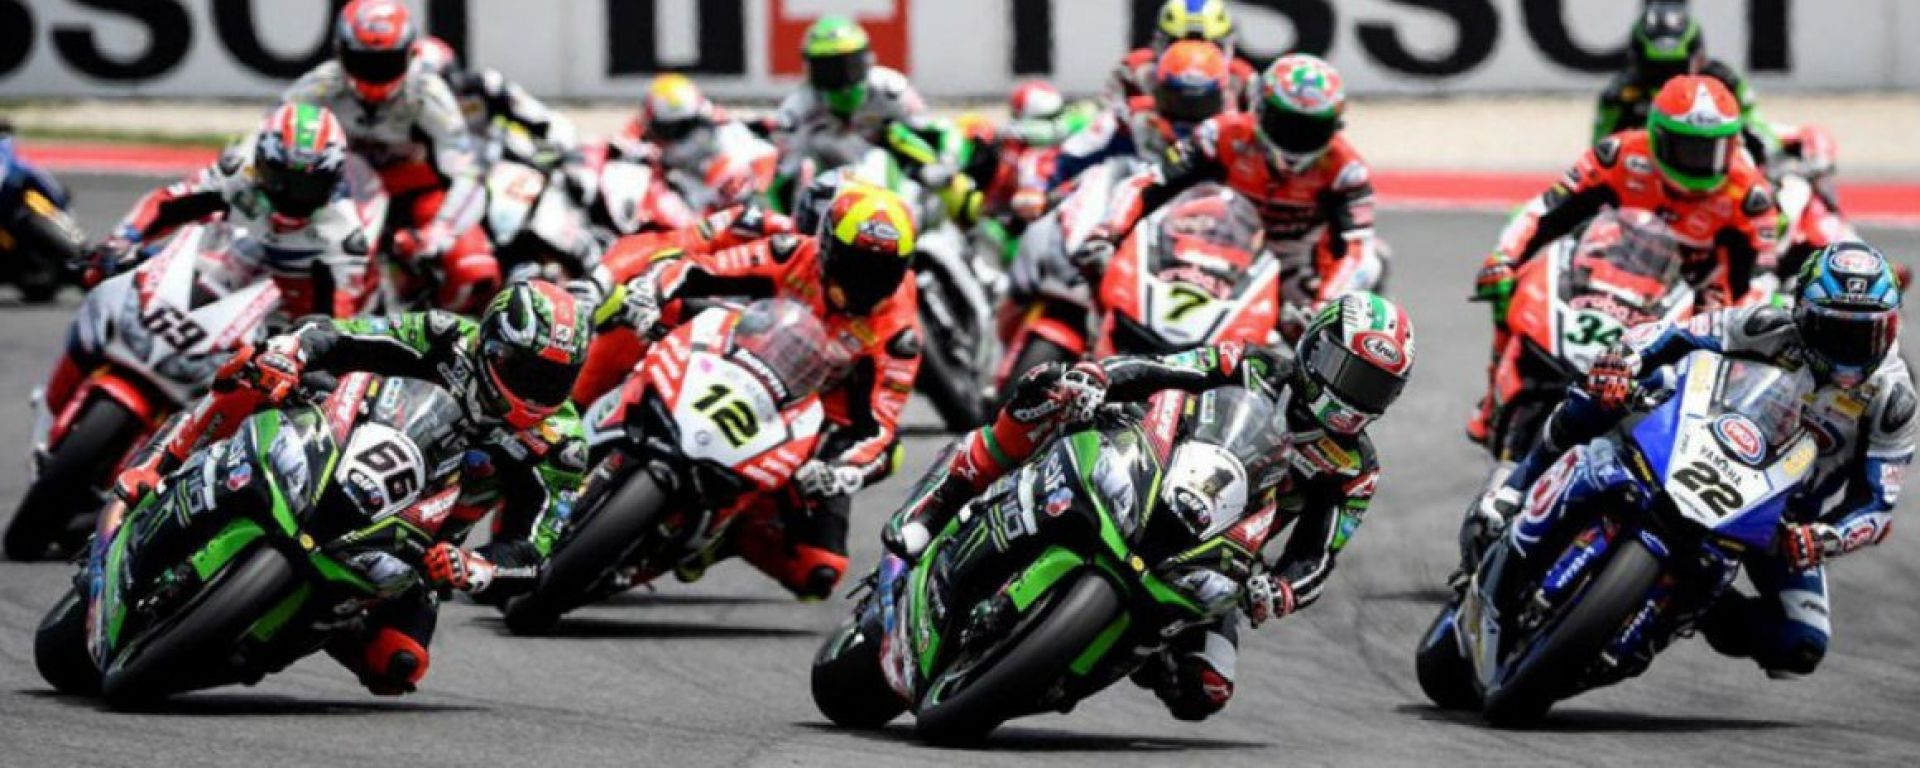 Superbike 2018: classifica piloti e team